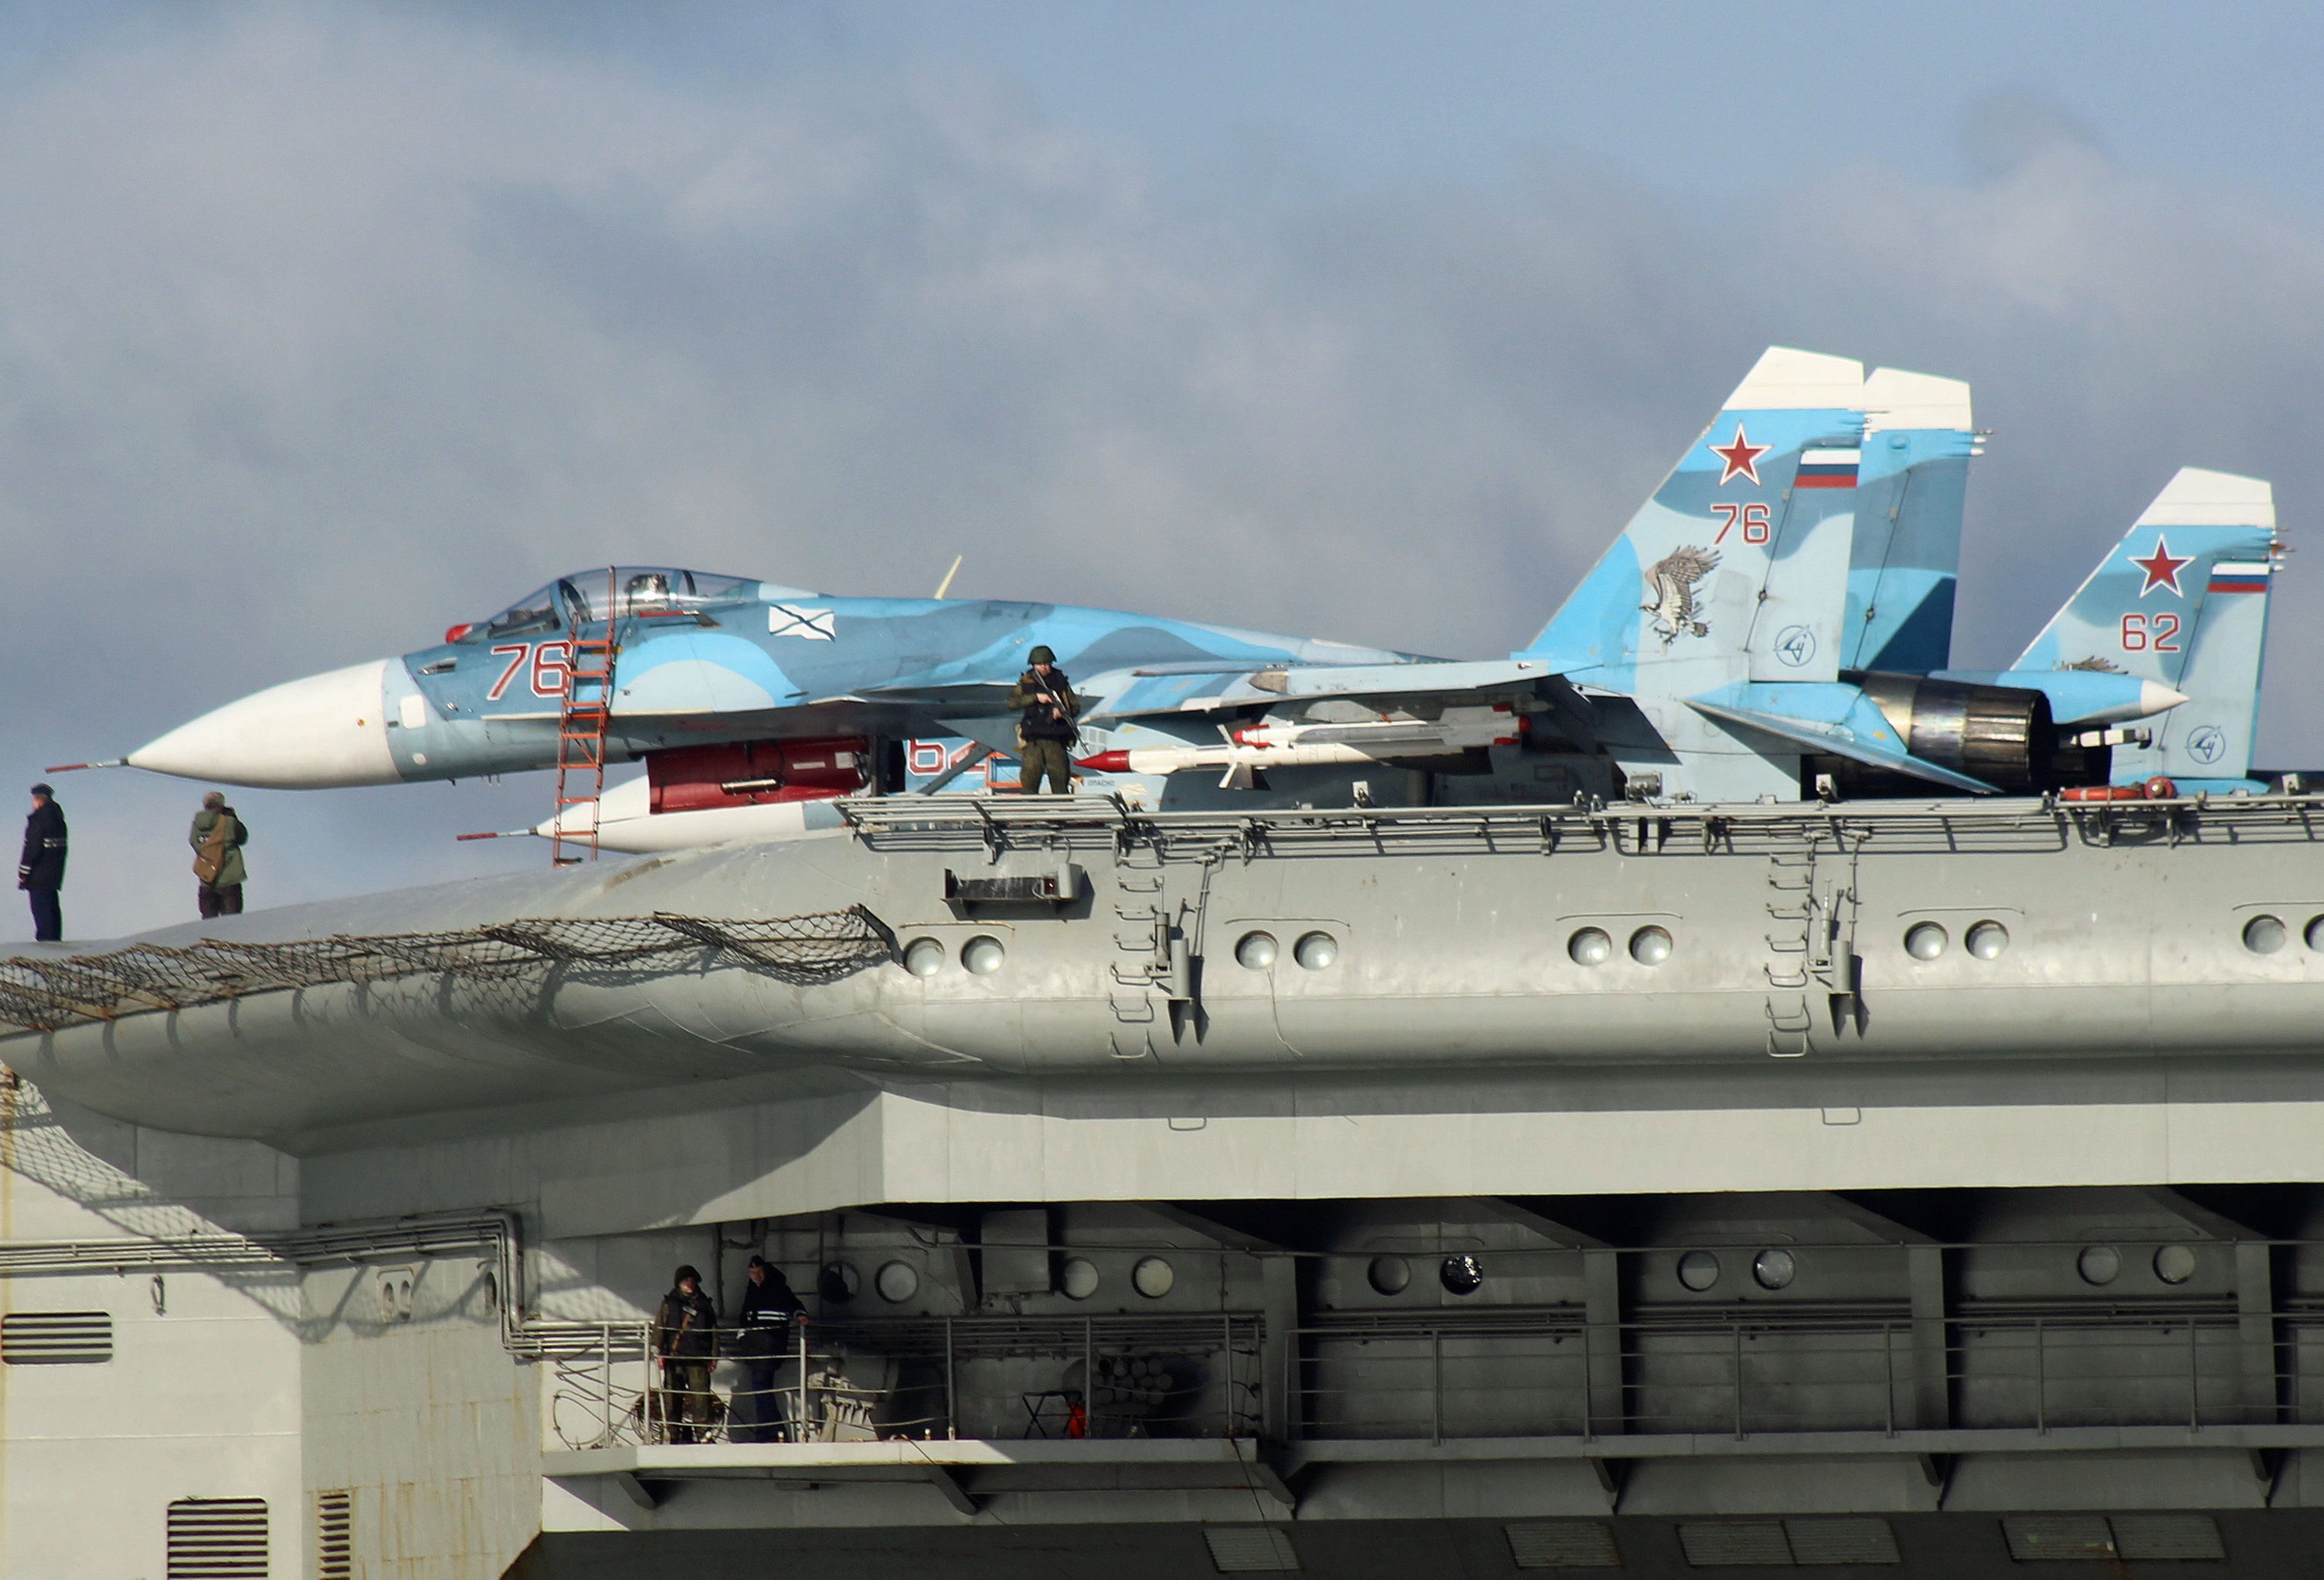 Sukhoi Su-33 Flanker-D fighters aboard the aircraft carrier Admiral Kuznetsov